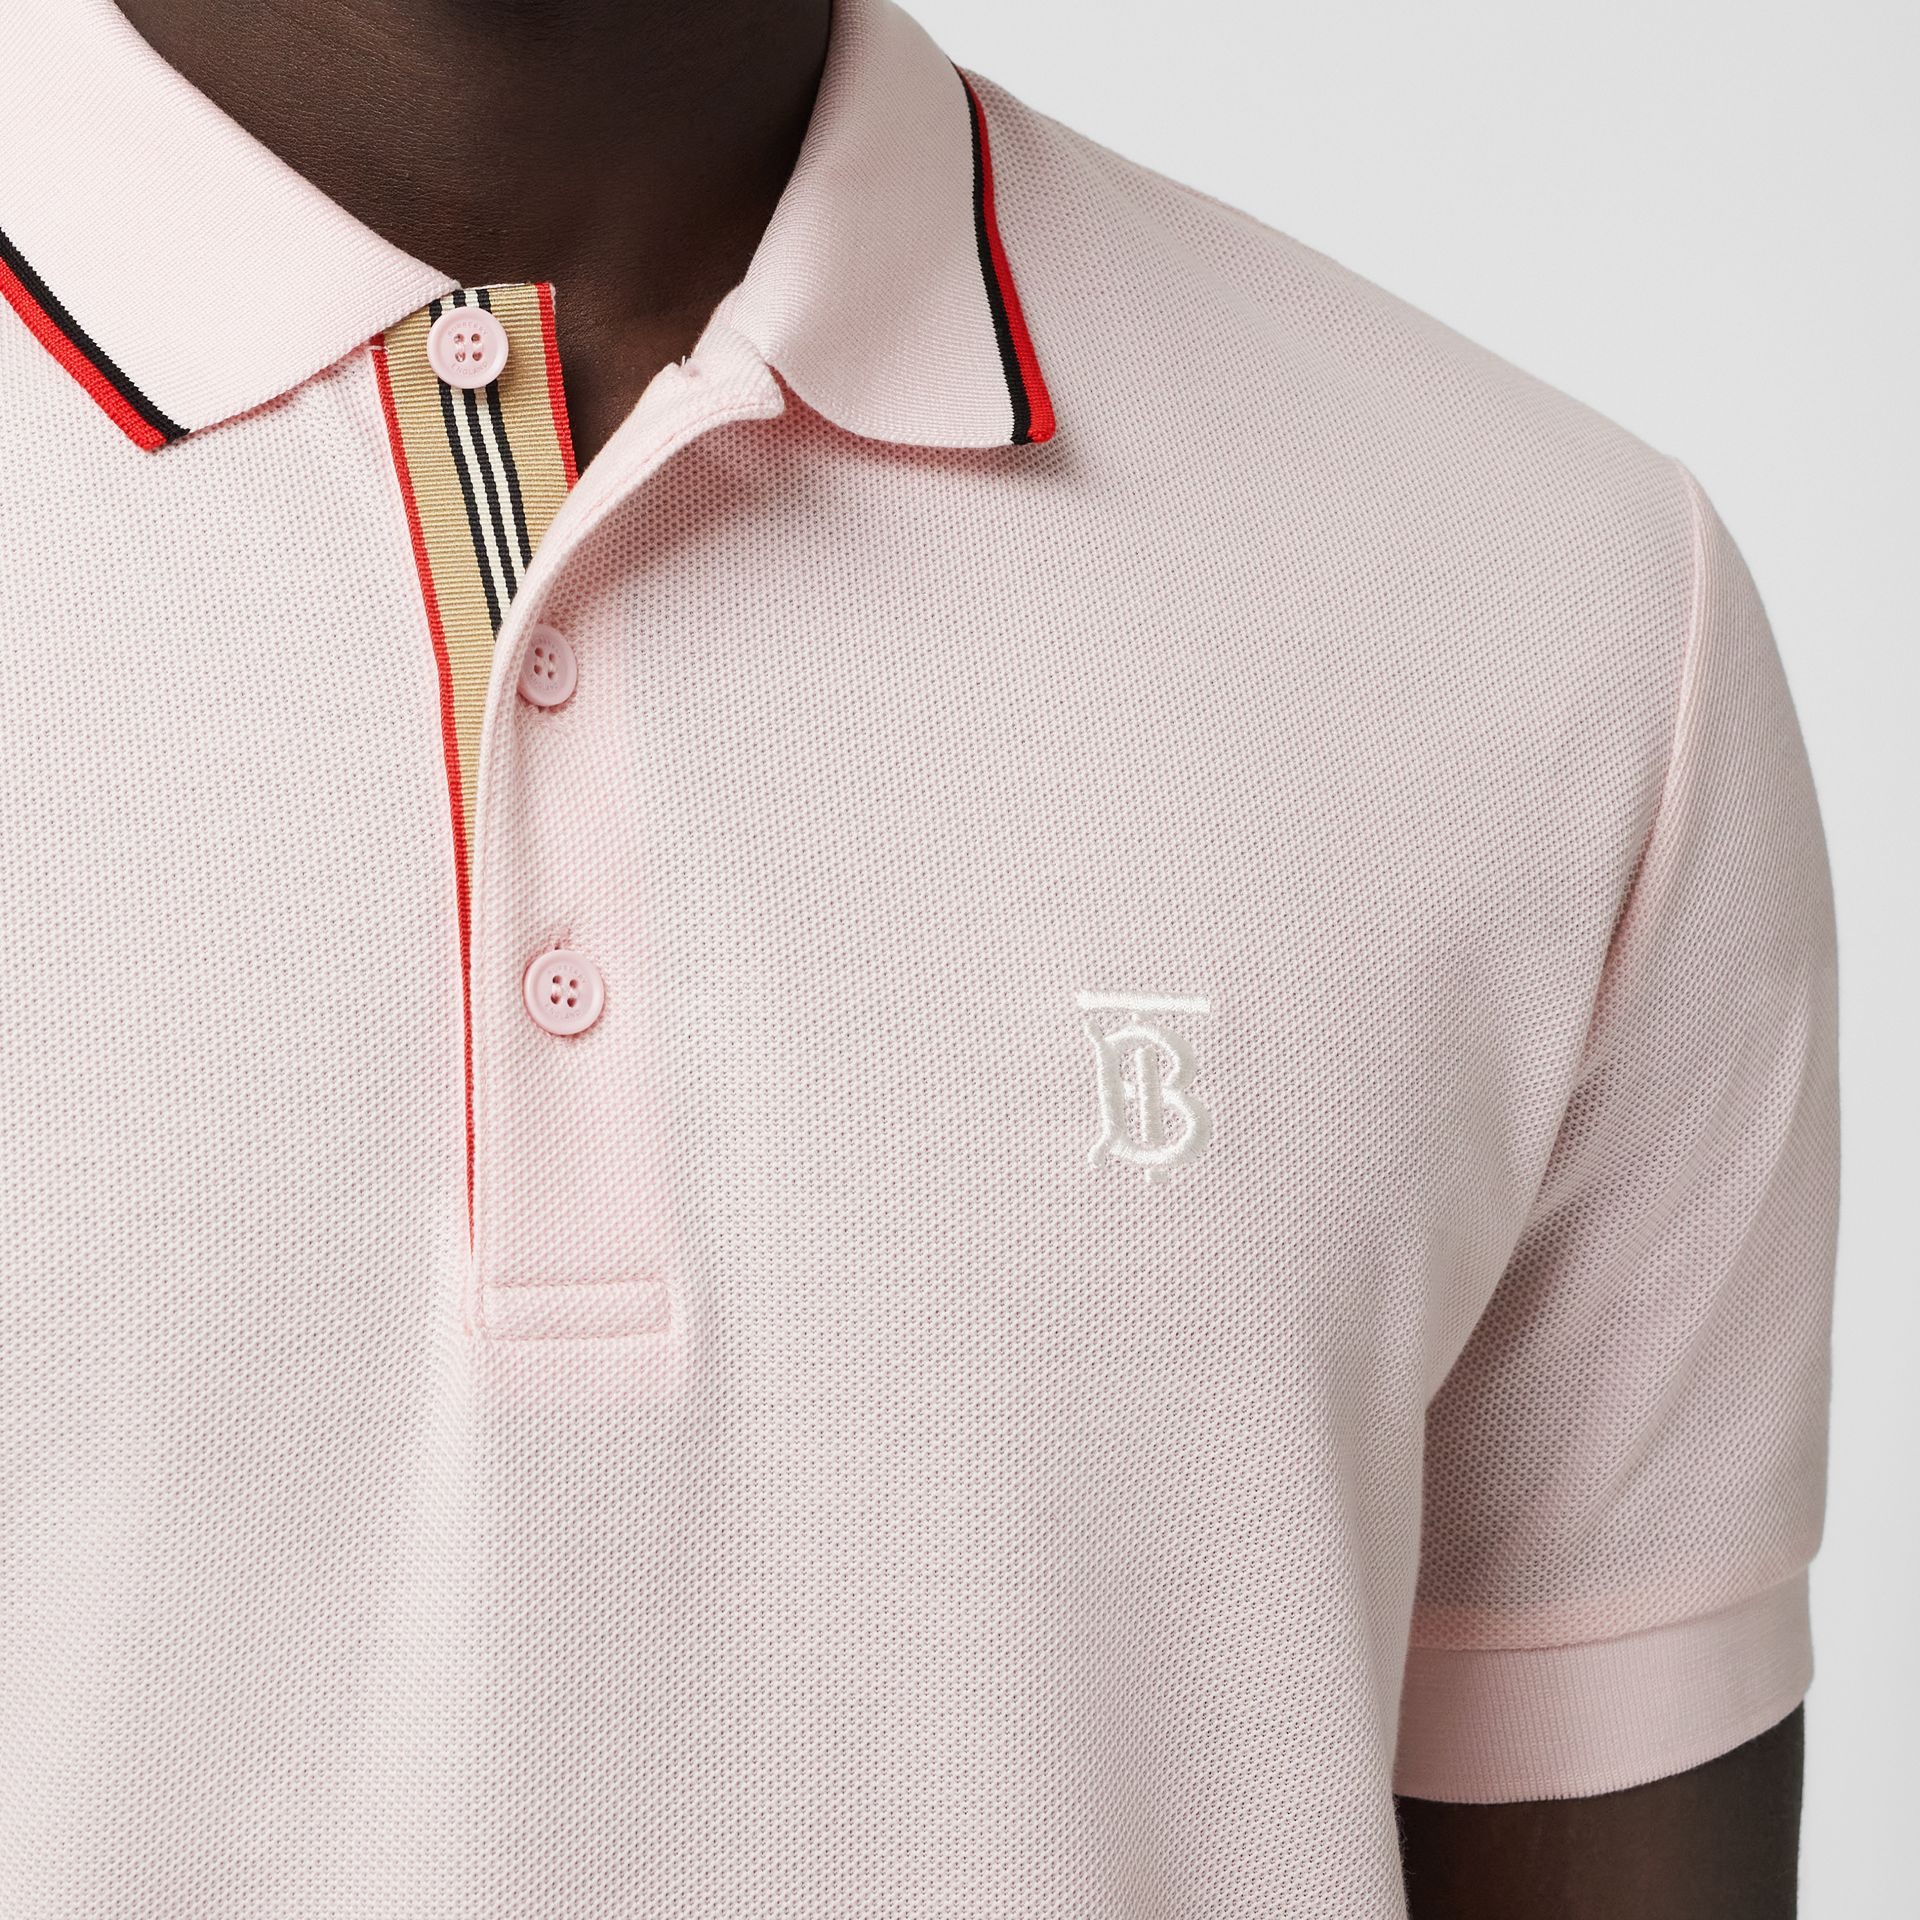 Monogram Motif Cotton Piqué Polo Shirt in Frosted Pink - Men | Burberry - gallery image 1